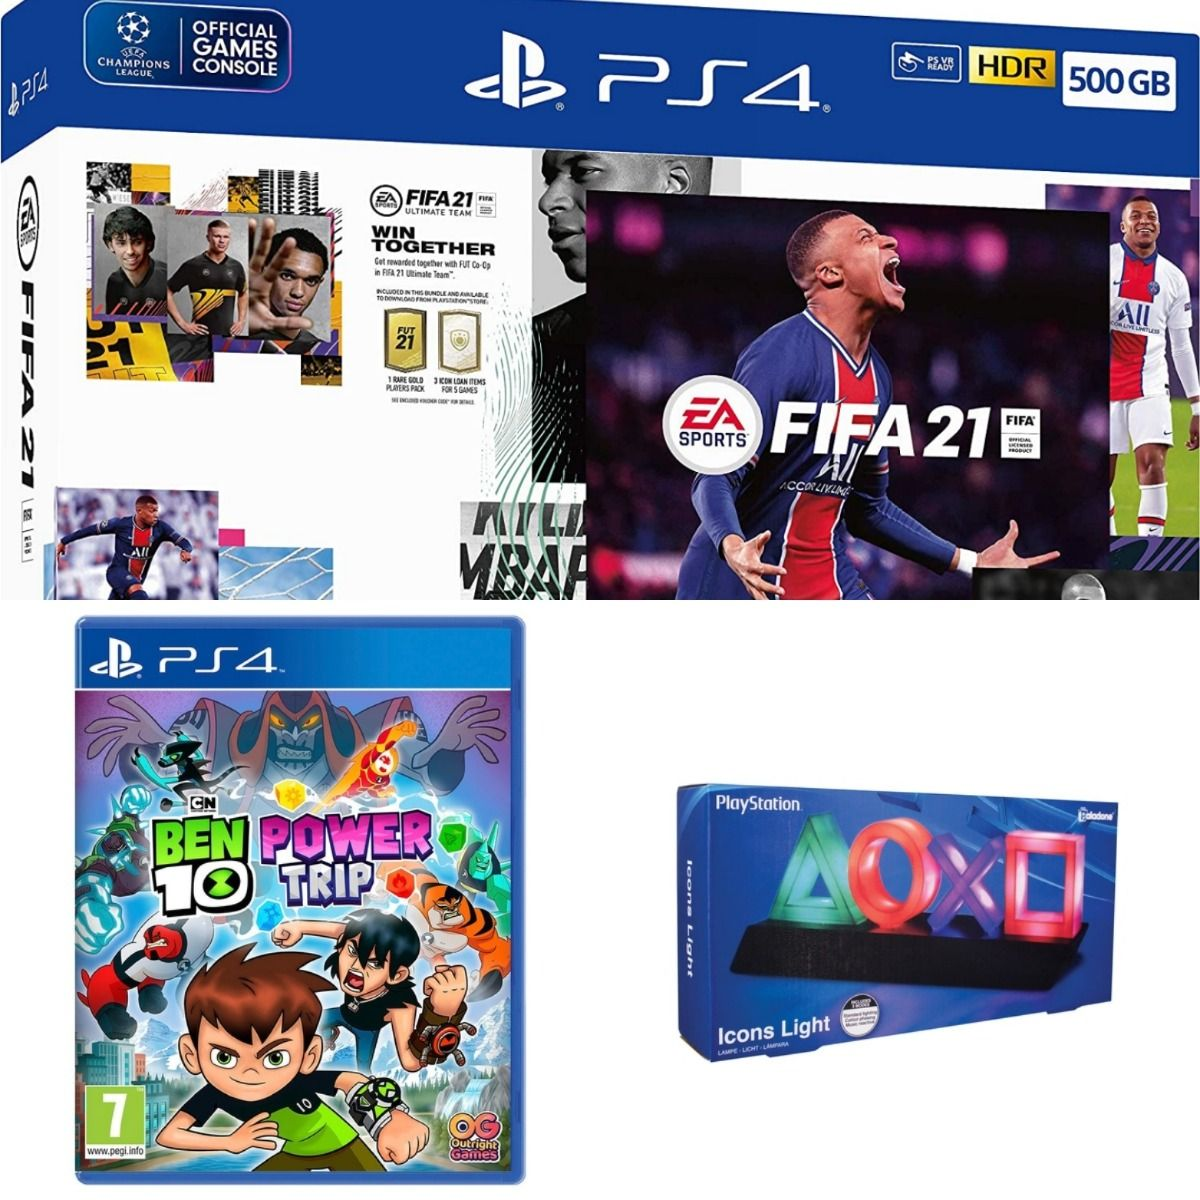 EA Sports Fifa 21 500GB PS4 Console + Second DualShock 4 Wireless Controller Bundle + Ben 10 + Playstation Icons Light